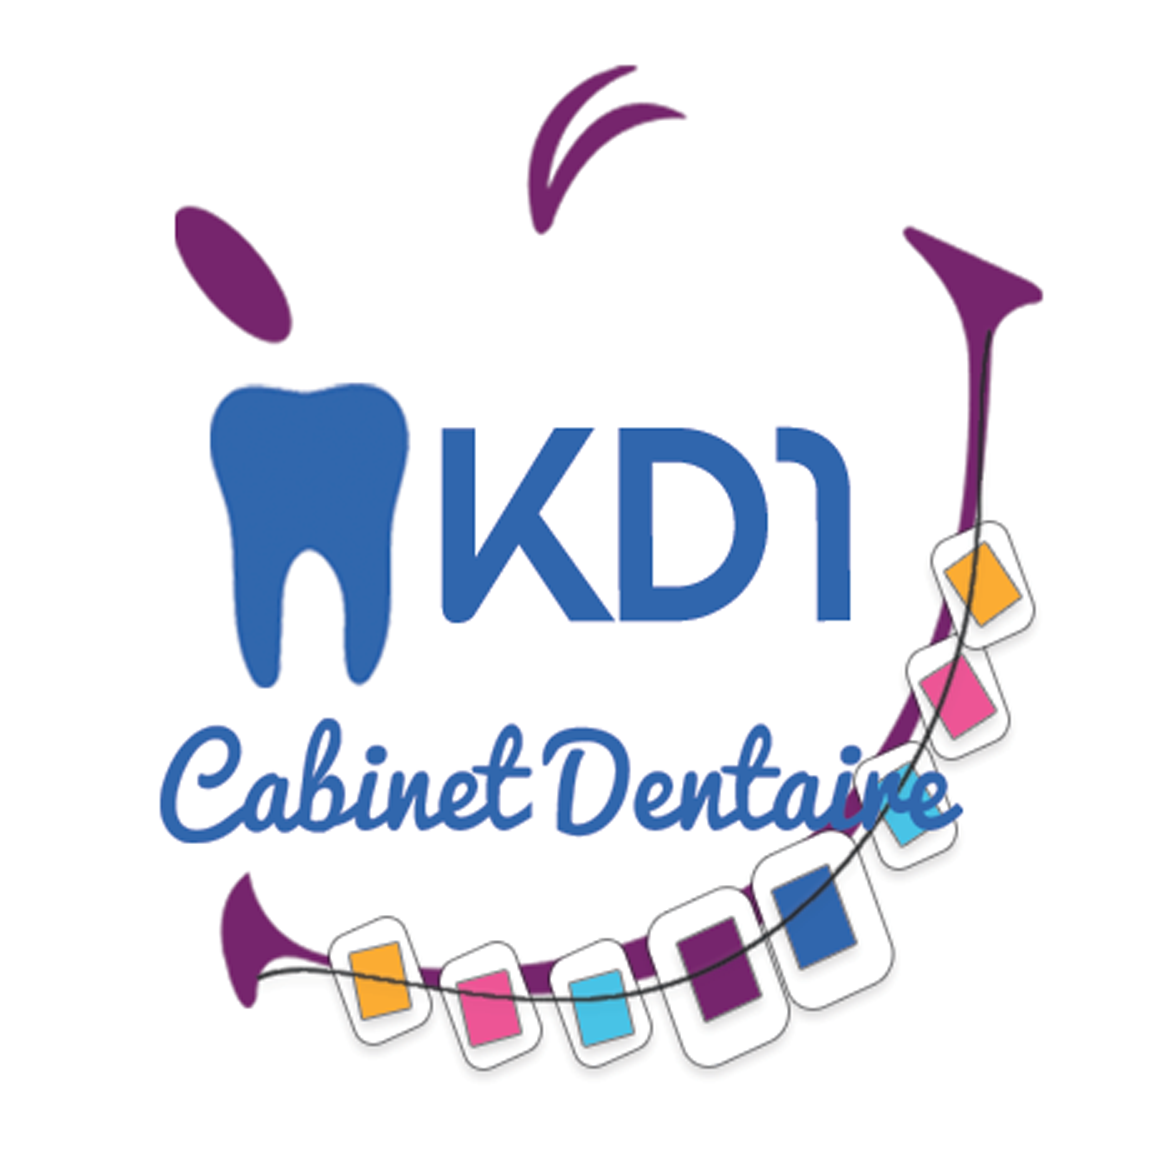 KD1 Cabinet Dentaire Khoury & Dulla